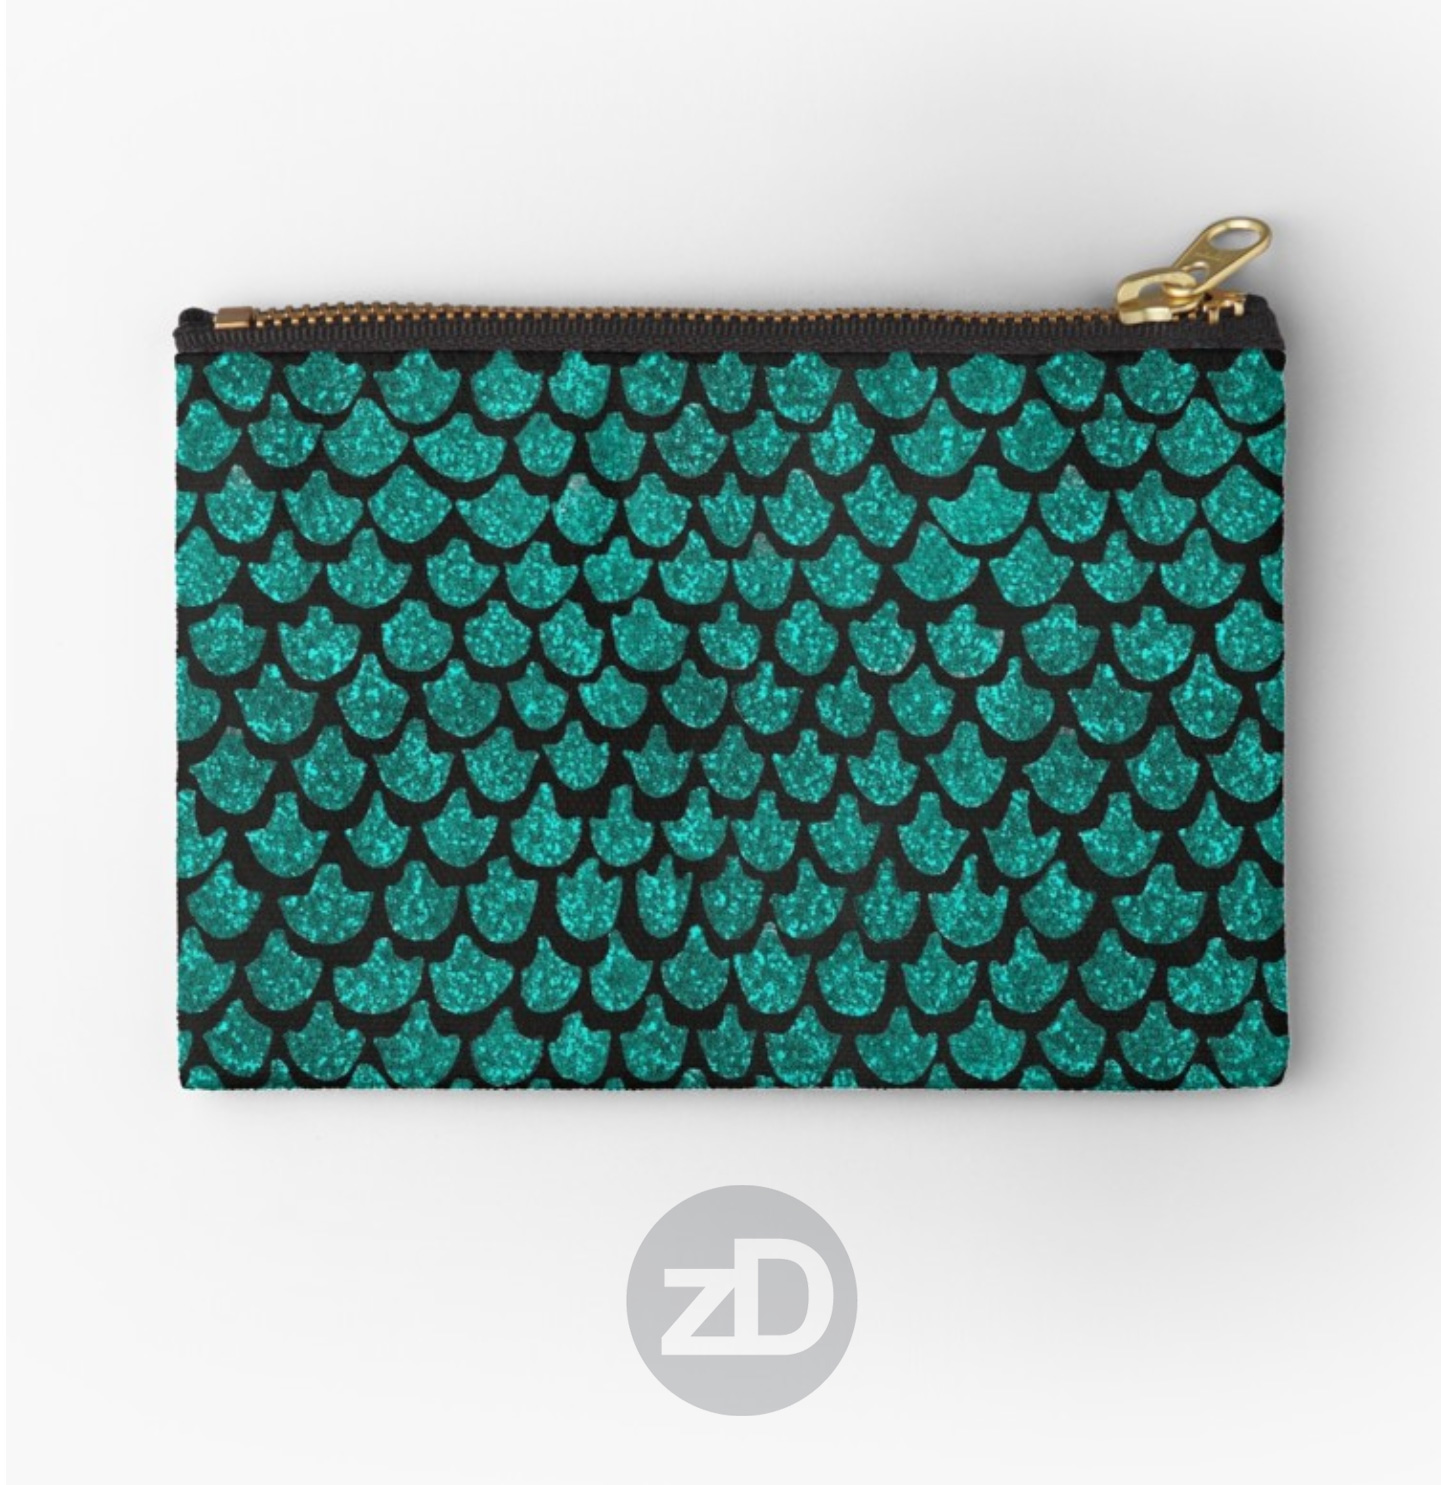 Zirkus Design | Indigo Vibes Summer Watercolor Surface Pattern Design Collection : Turquoise Mermaid Tail Glitter Glam Pouch from RedBubble